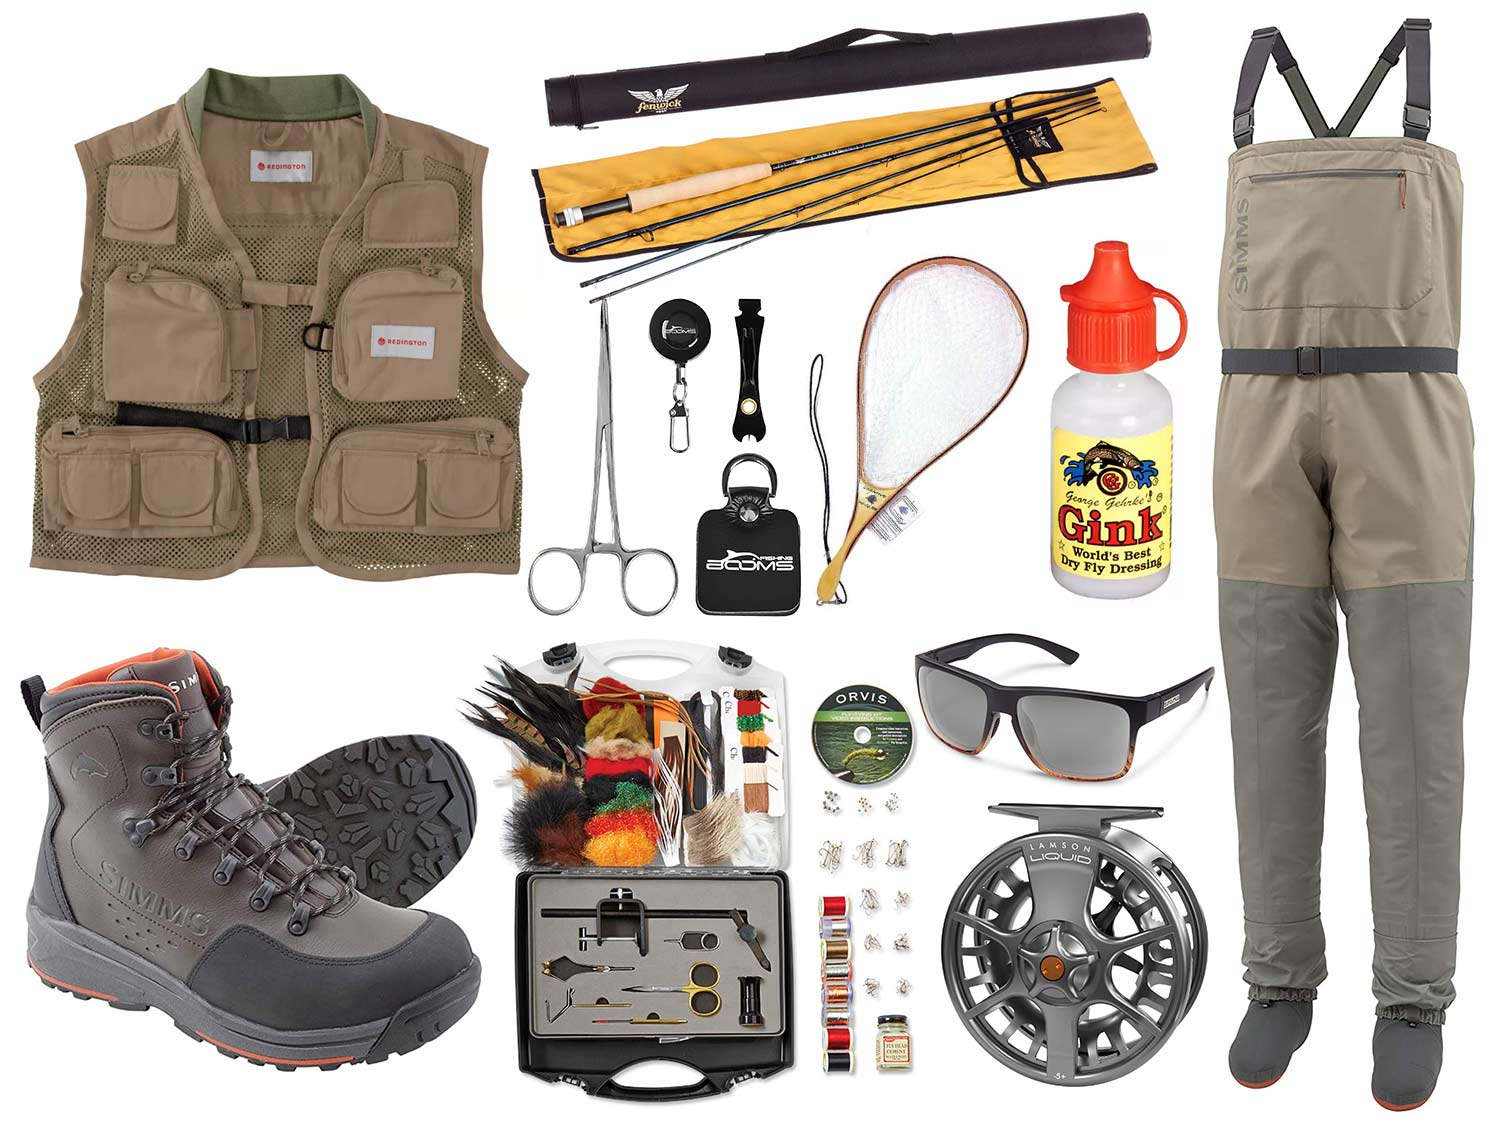 A collage of fly fishing gear on a white background.